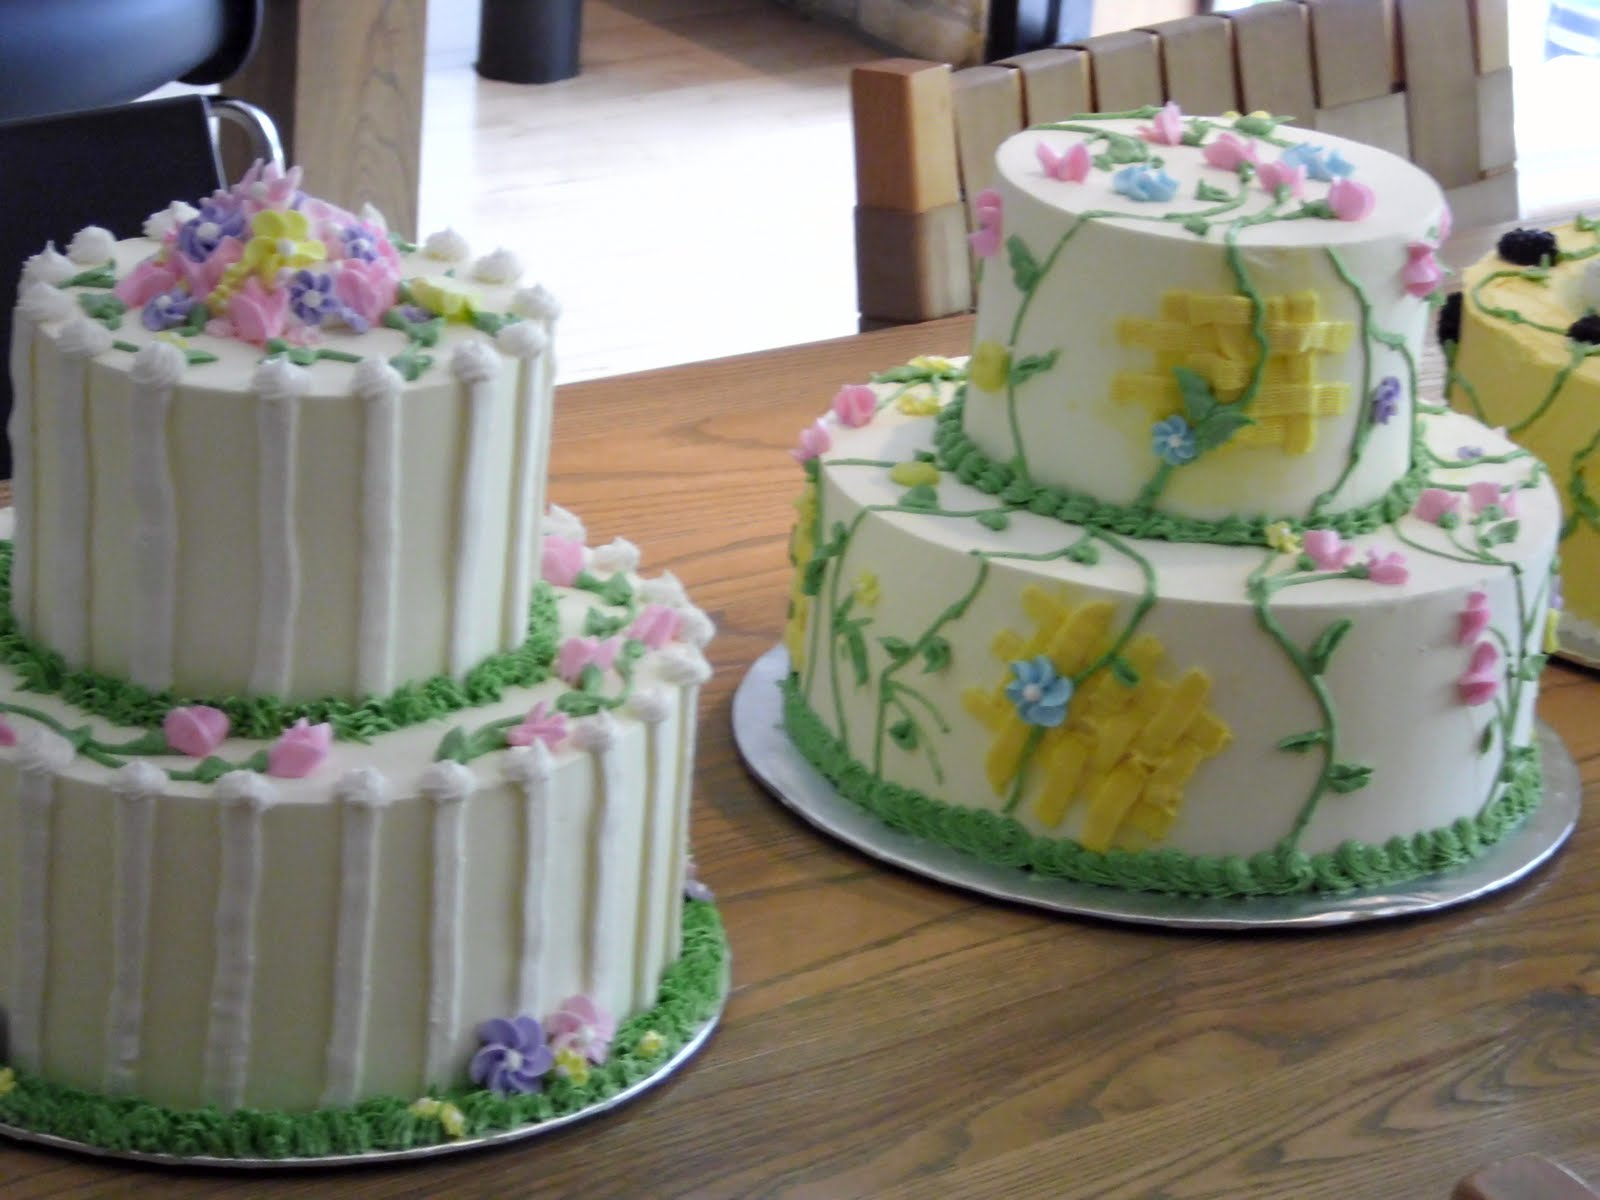 Pat Cooks and Bakes: Cake Decorating for Fun